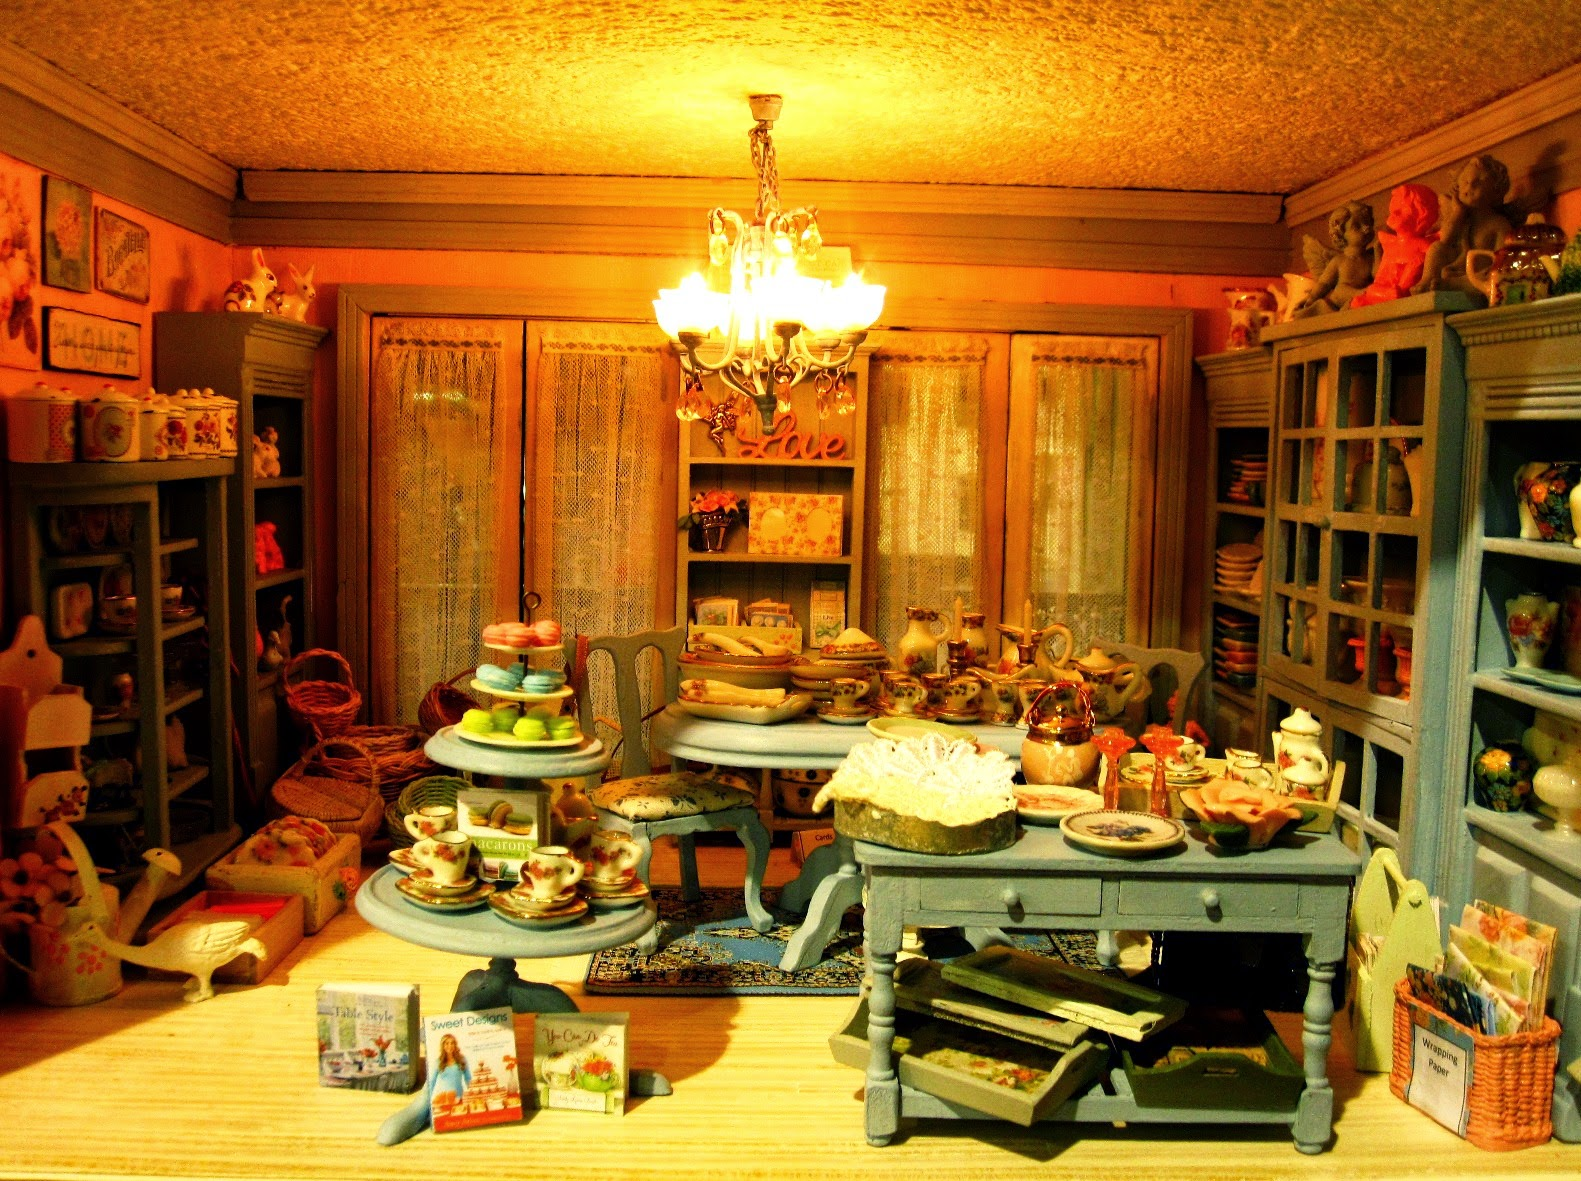 The first floor fo a modern miniature shabby chic shop, with blue cabinets displaying a range of dinnerware and decorative items.